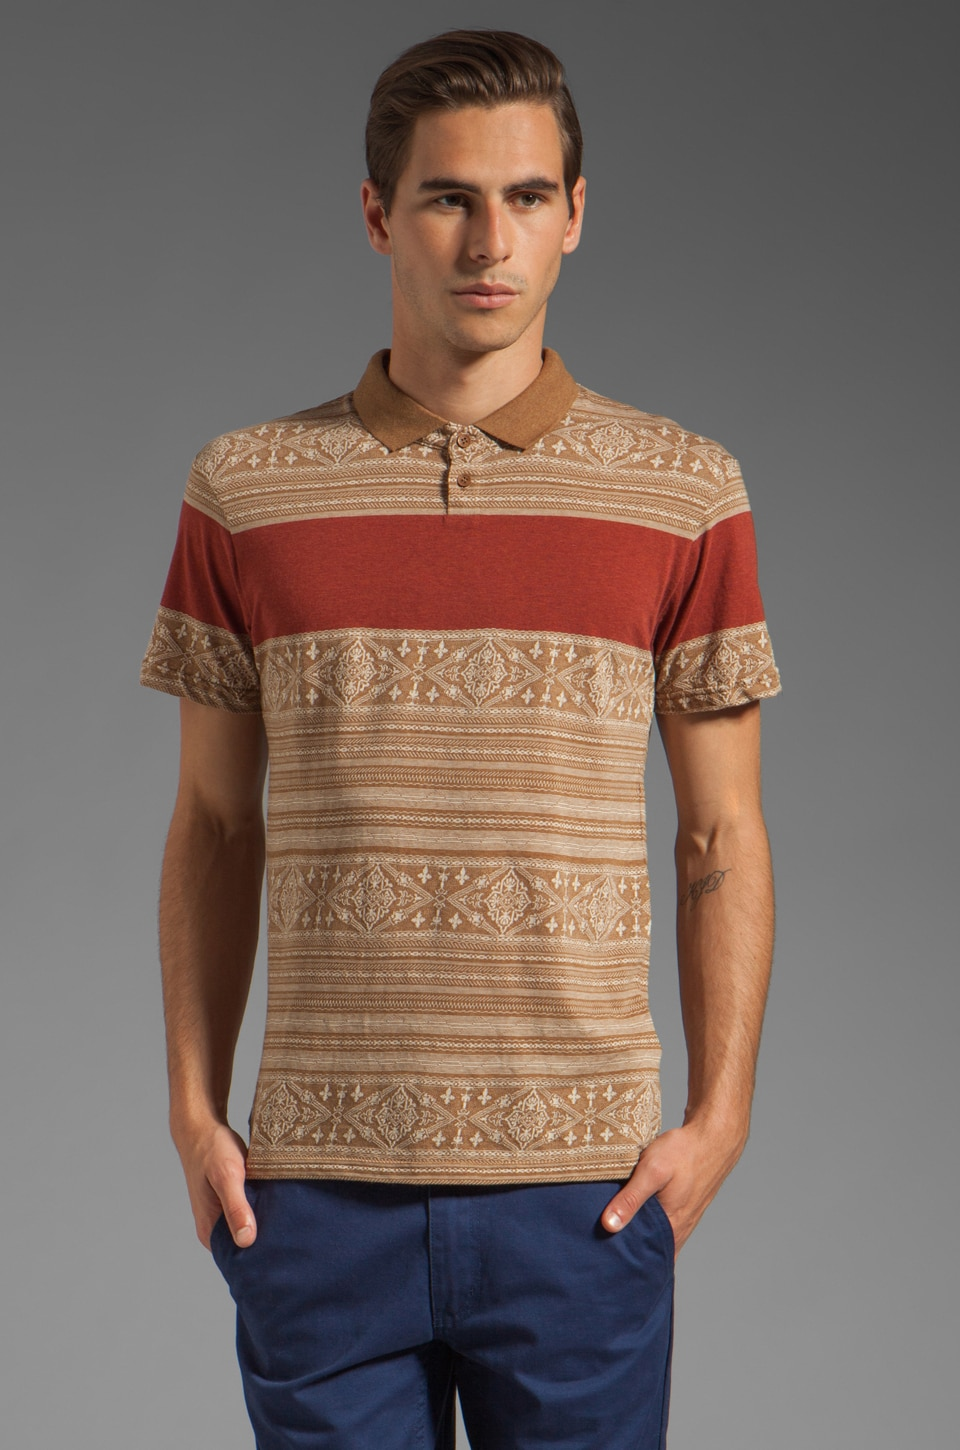 Insight Mexi Cali Polo in Digger